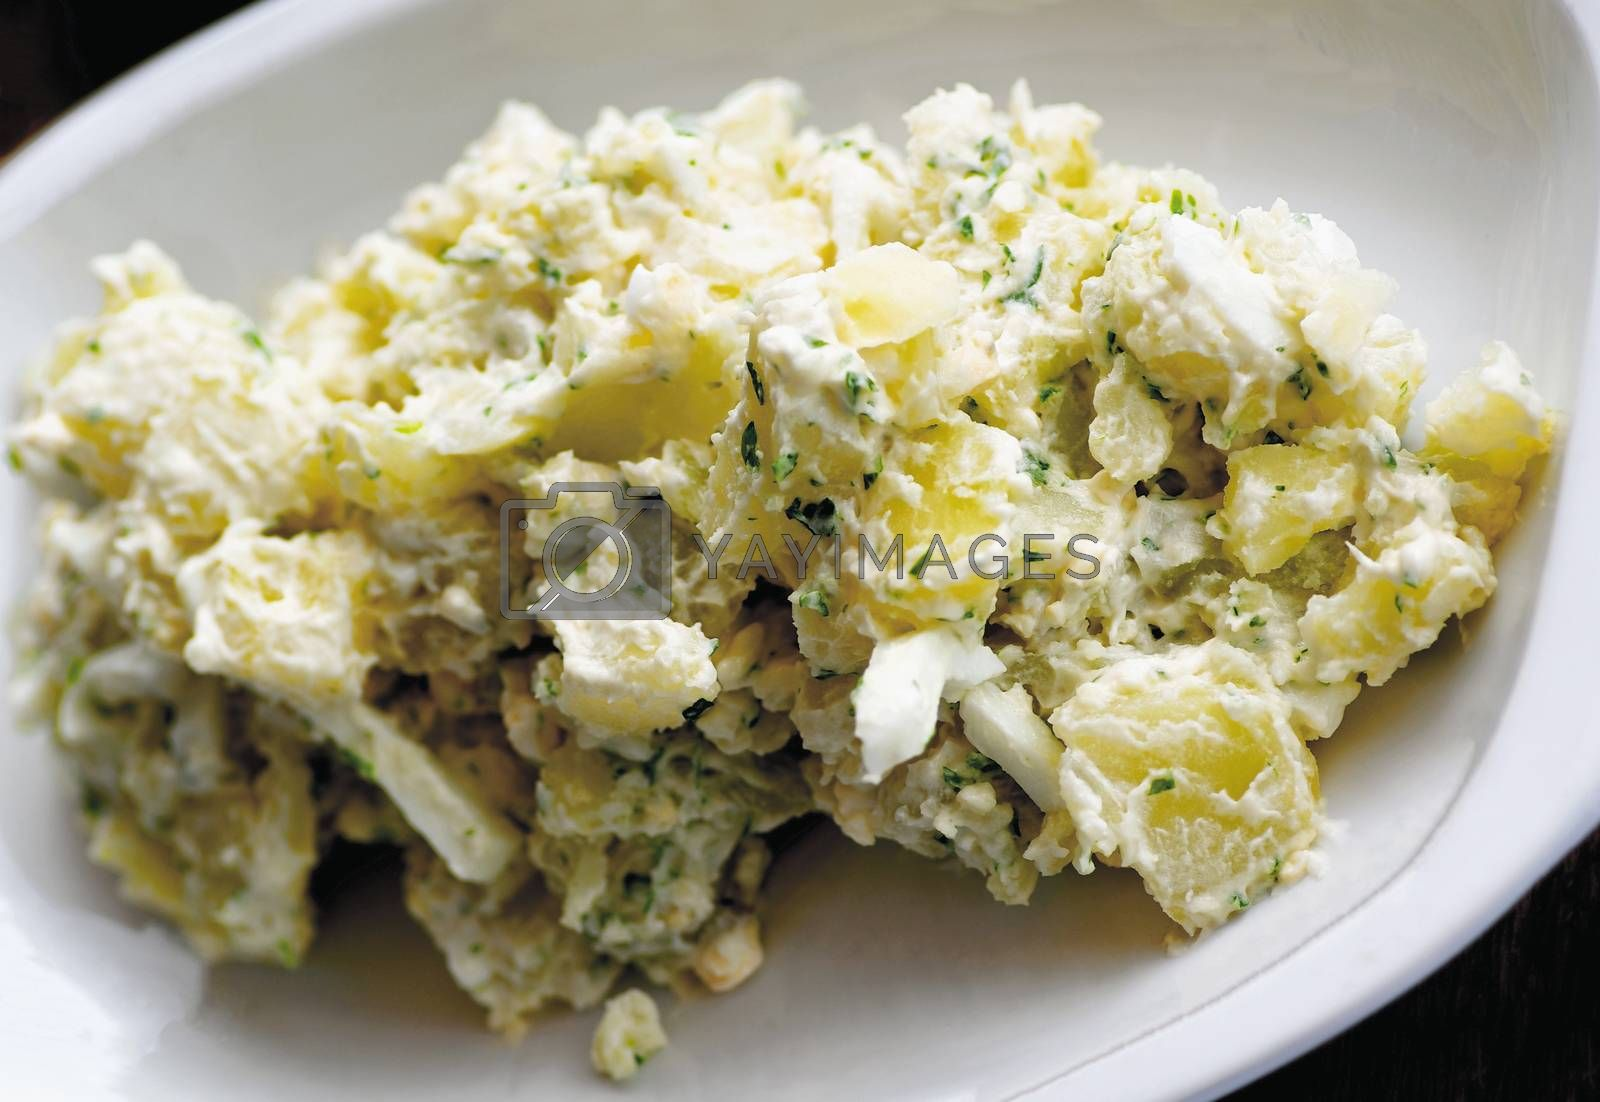 Delicious Freshly Made Creamy Potato Salad with Chives on White Plate closeup. Selective Focus